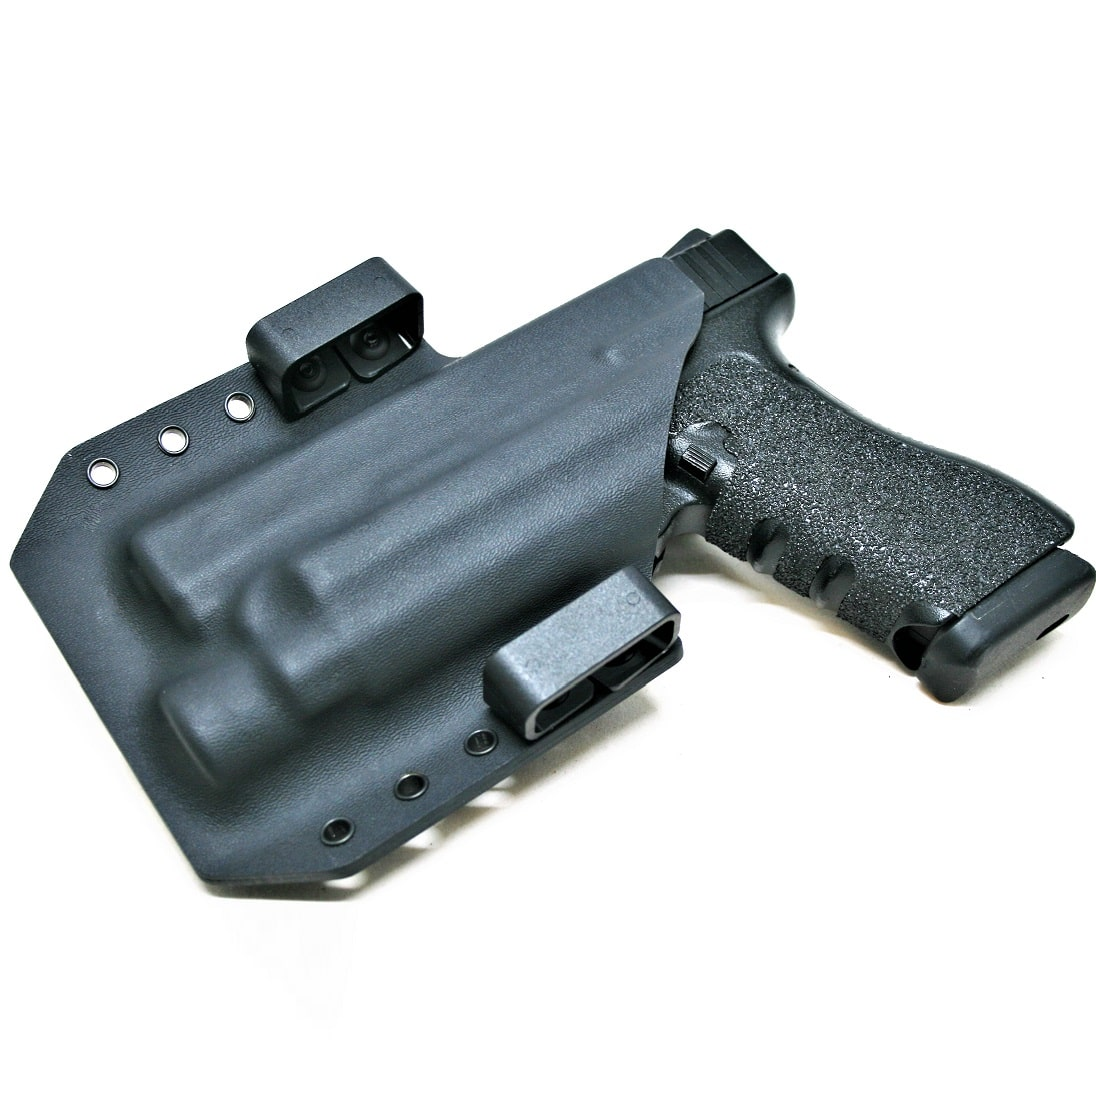 OWB Light Bearing Holster